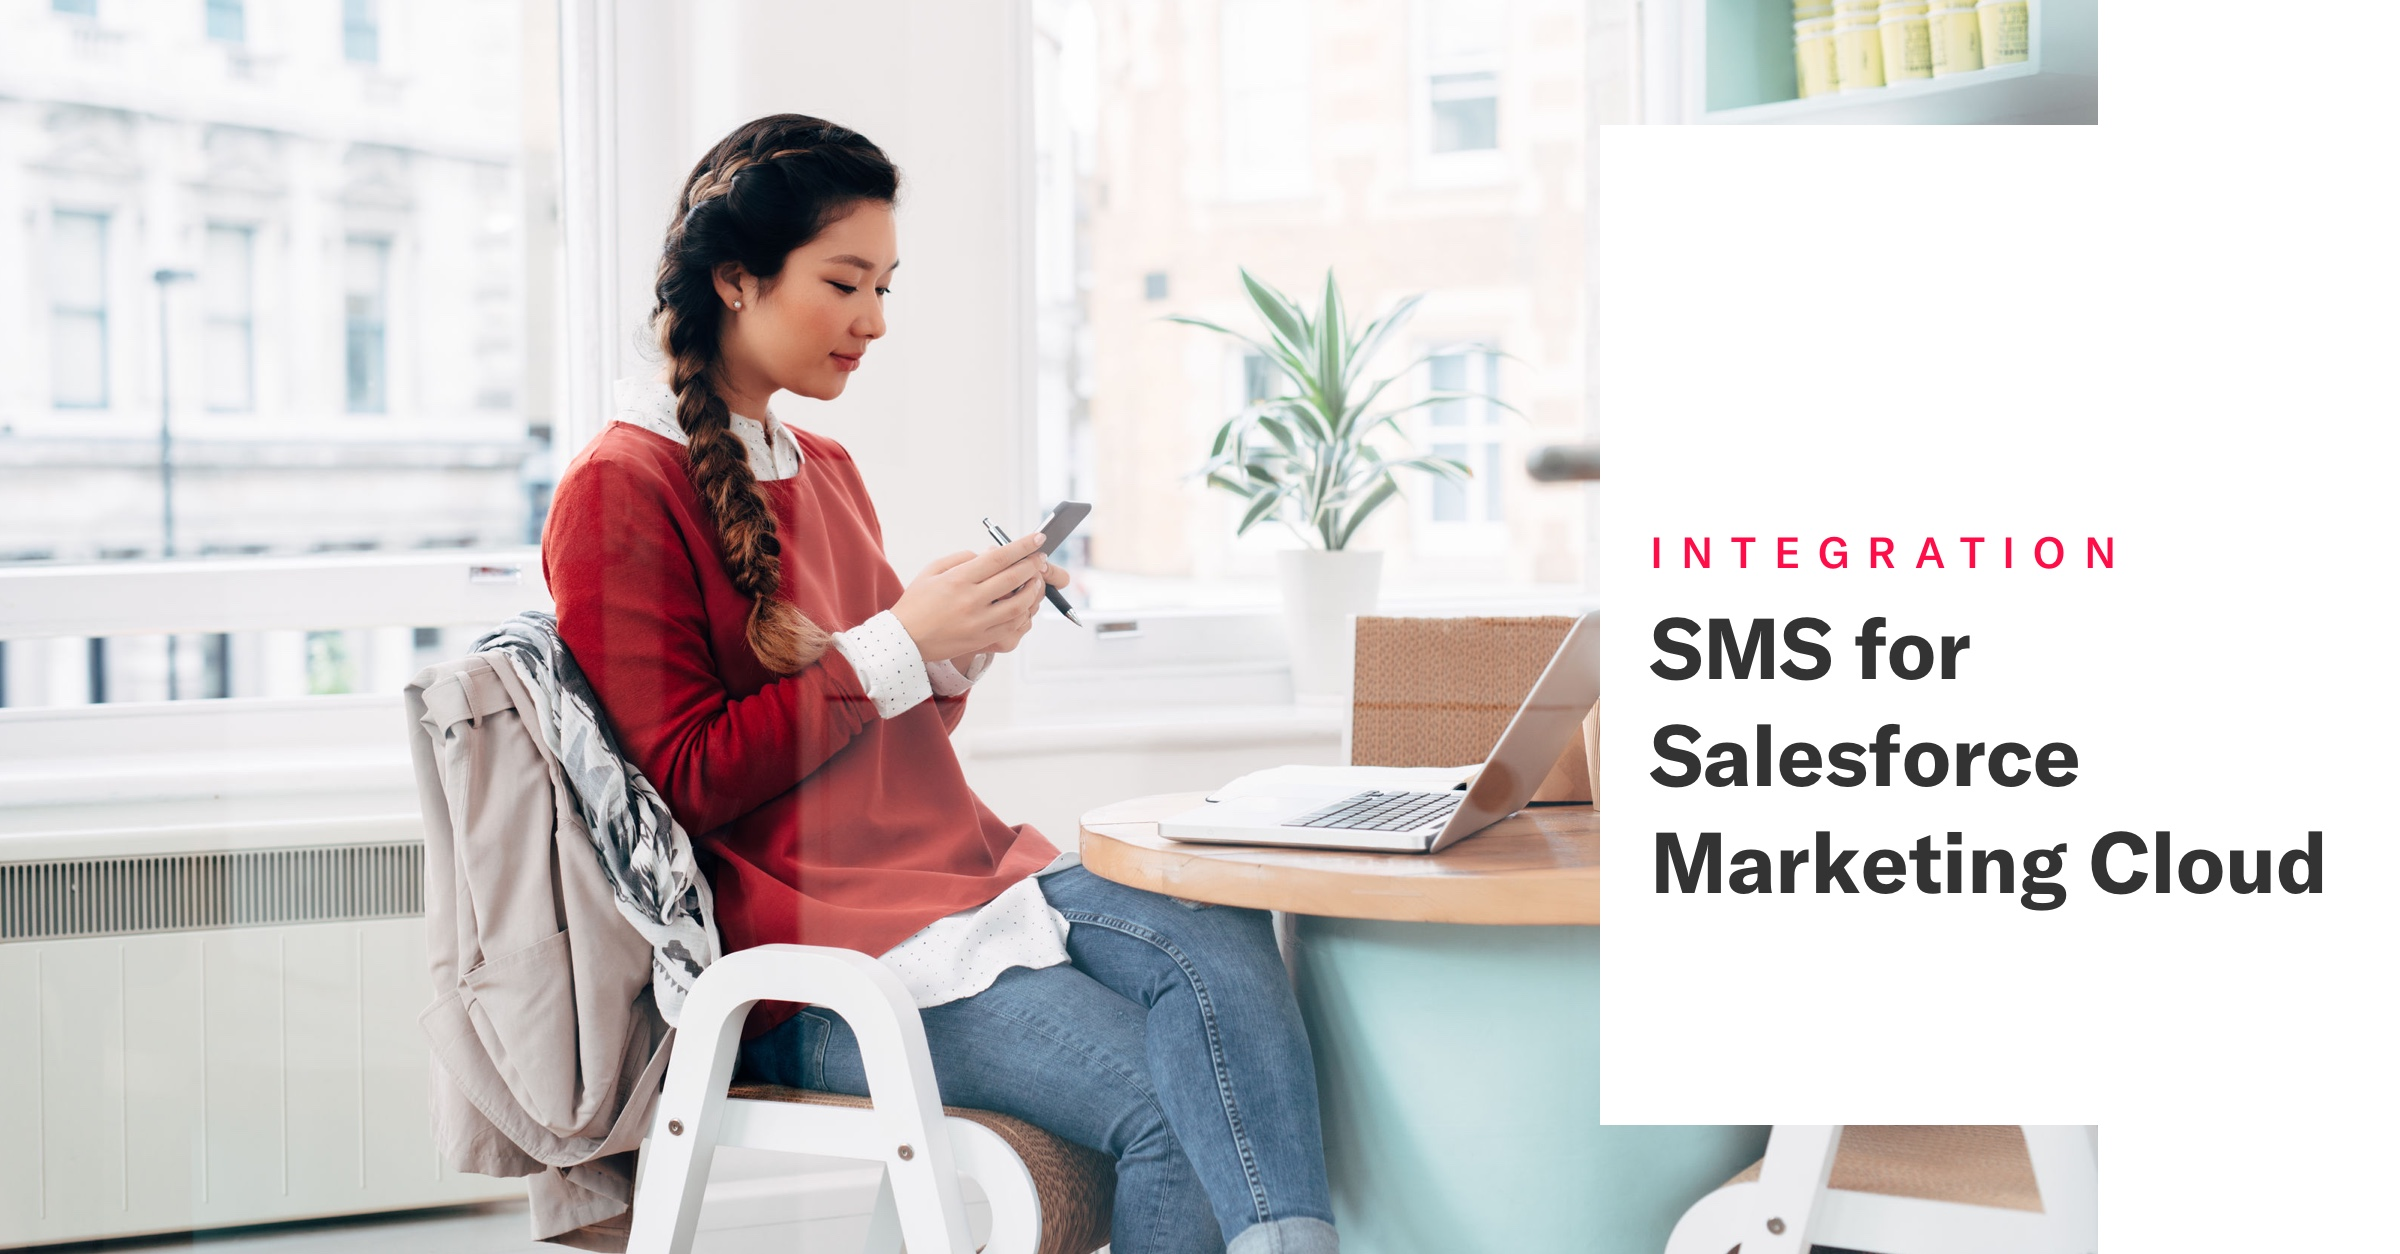 SMS Support in Salesforce Marketing Cloud